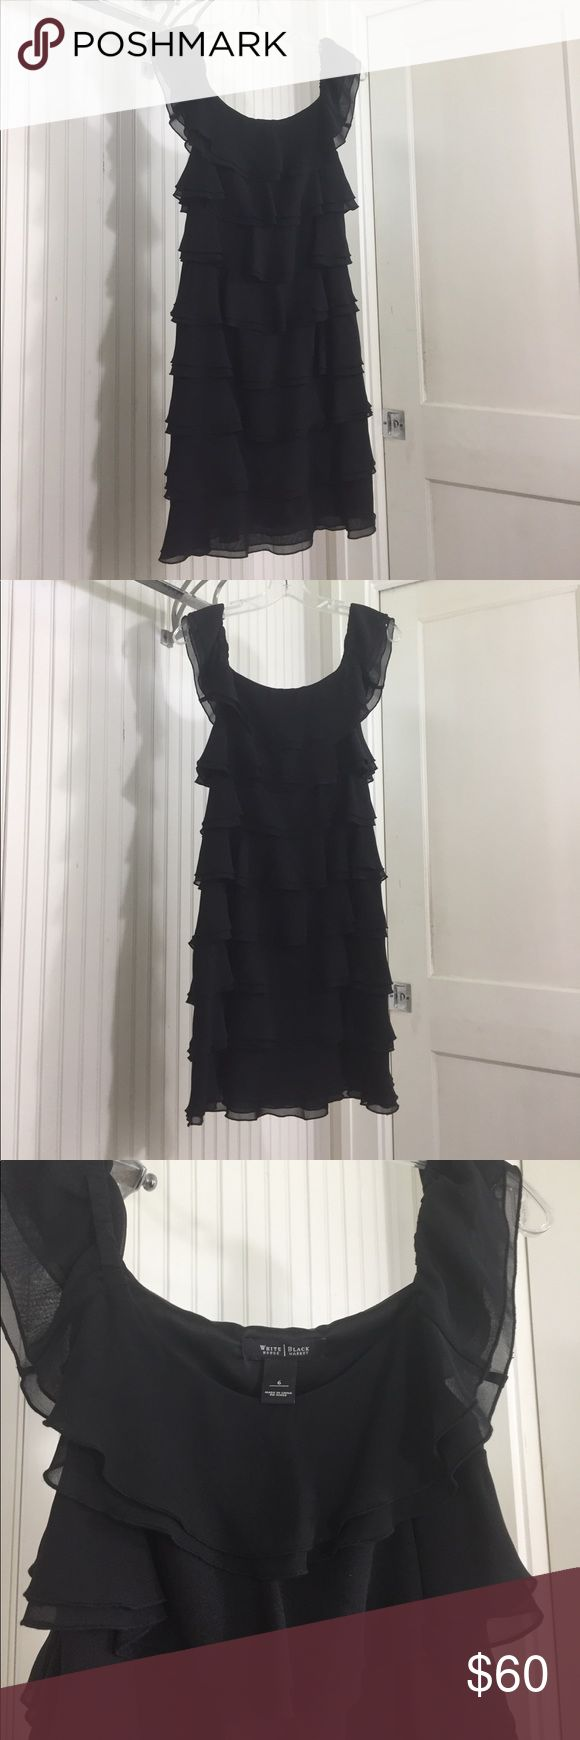 White House Black Market Double Ruffle Dress WHBM Dress perfect for date night or a special occasion. 100% Polyester, side zip and lined. Double Ruffle detail on this great dress. EUC from smoke free home. White House Black Market Dresses Mini